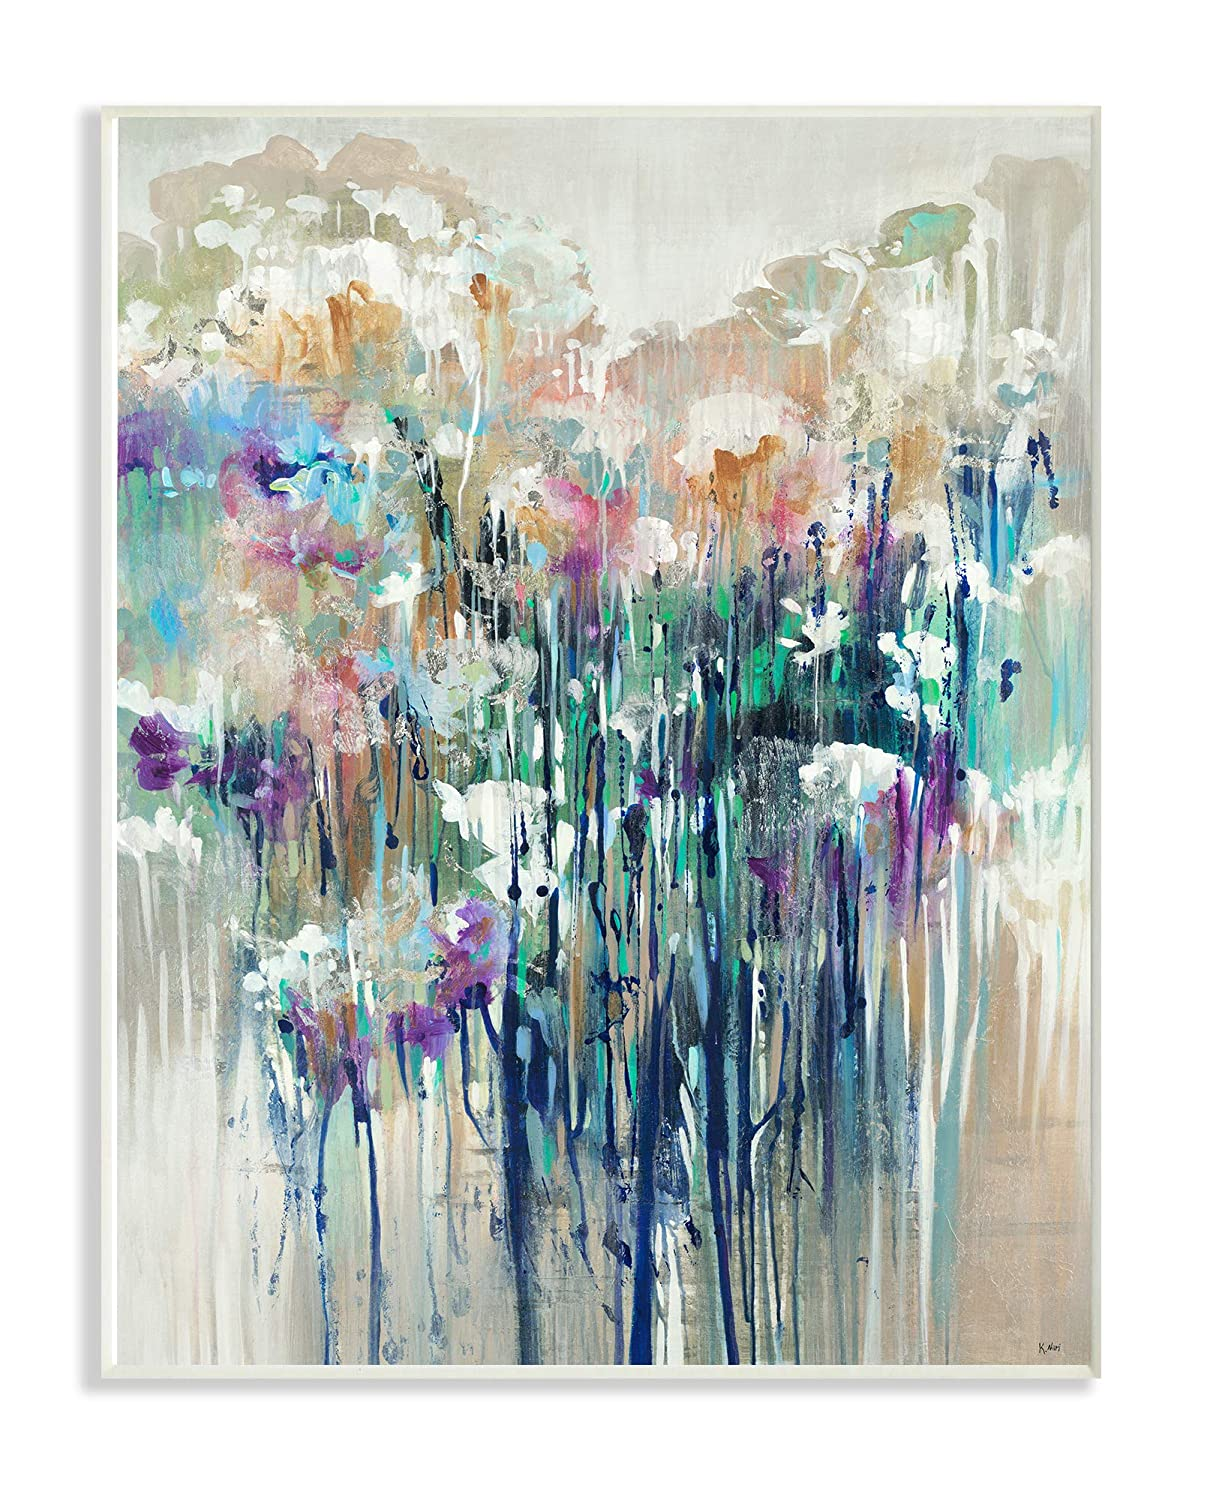 The Stupell Home Decor Dripping Blue and Purple with Soft Neutrals Abstract Stretched Canvas Wall Art Multi-Color 24 x 30